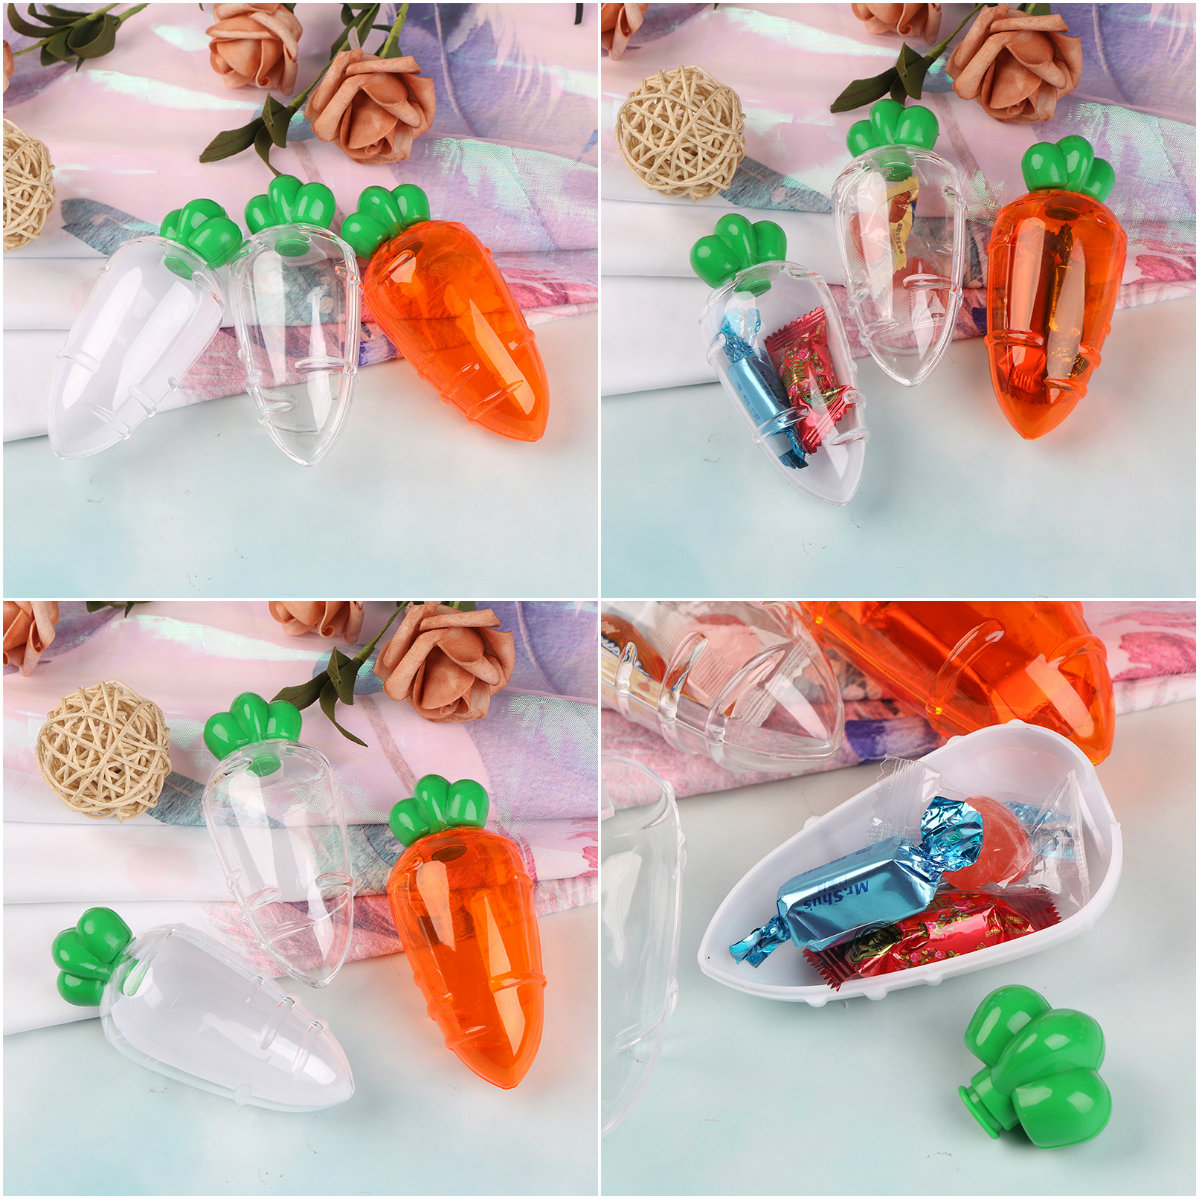 Plastic Lovely Carrot Candy Box Wedding Favor Box Baby Shower Kids Birthday Party Gift Box Christmas Gift Packaging